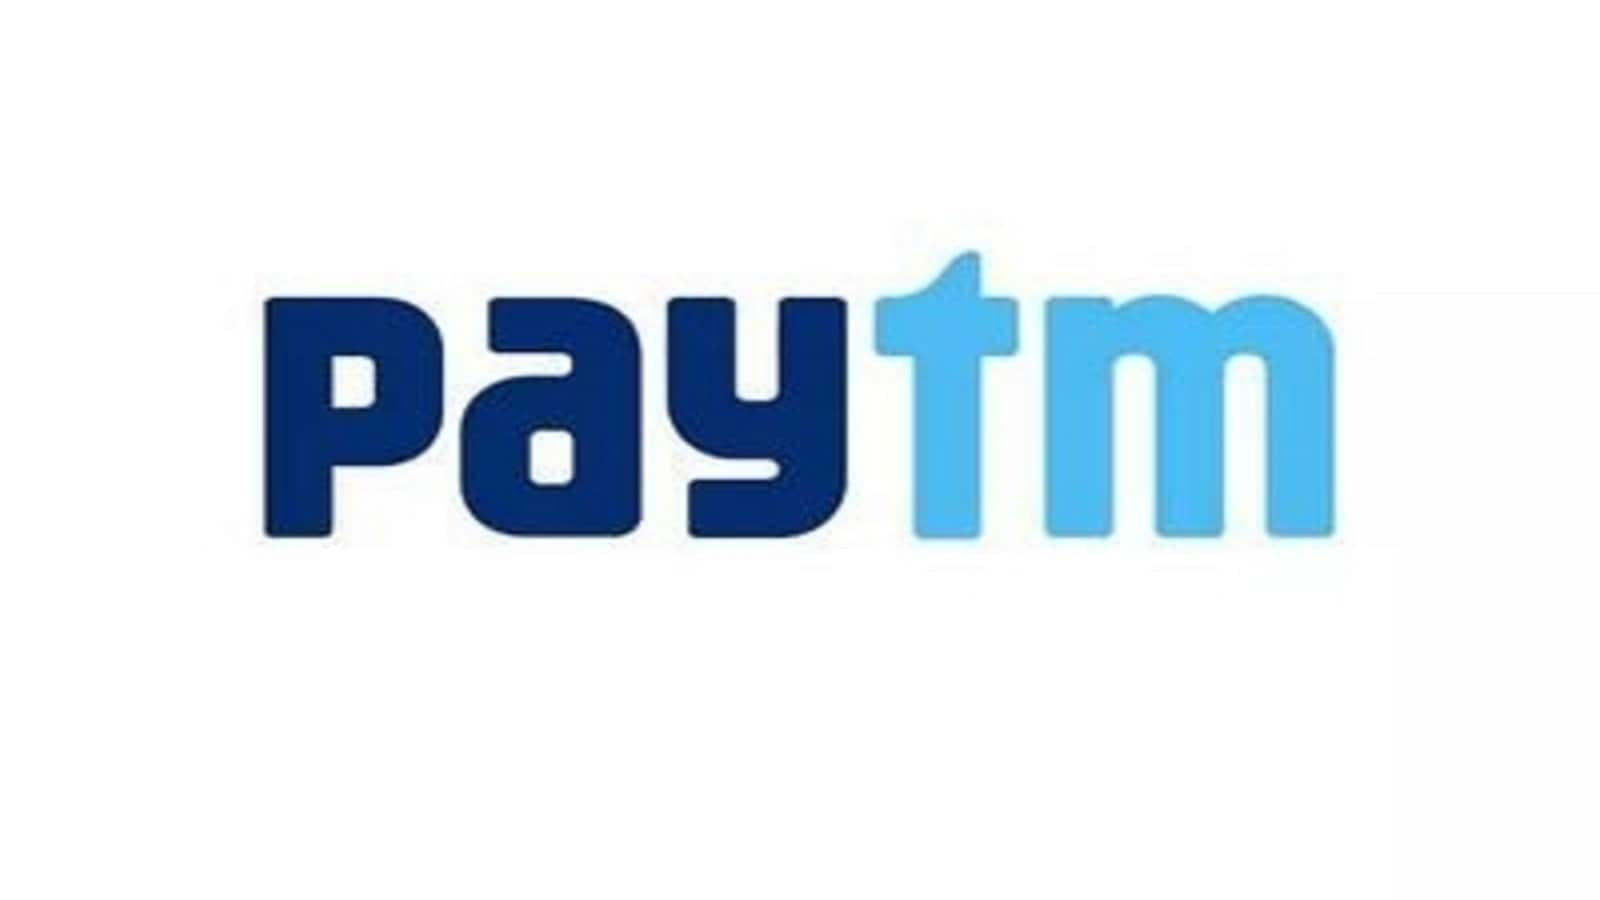 <em>One97 Communications</em>, the Paytm parent, ranks 18th position in the list. The Noida-based company, which runs subsidiaries including Paytm Money, is headed by Vijay Shekhar Sharma.(Image source: Twitter/@Paytm)